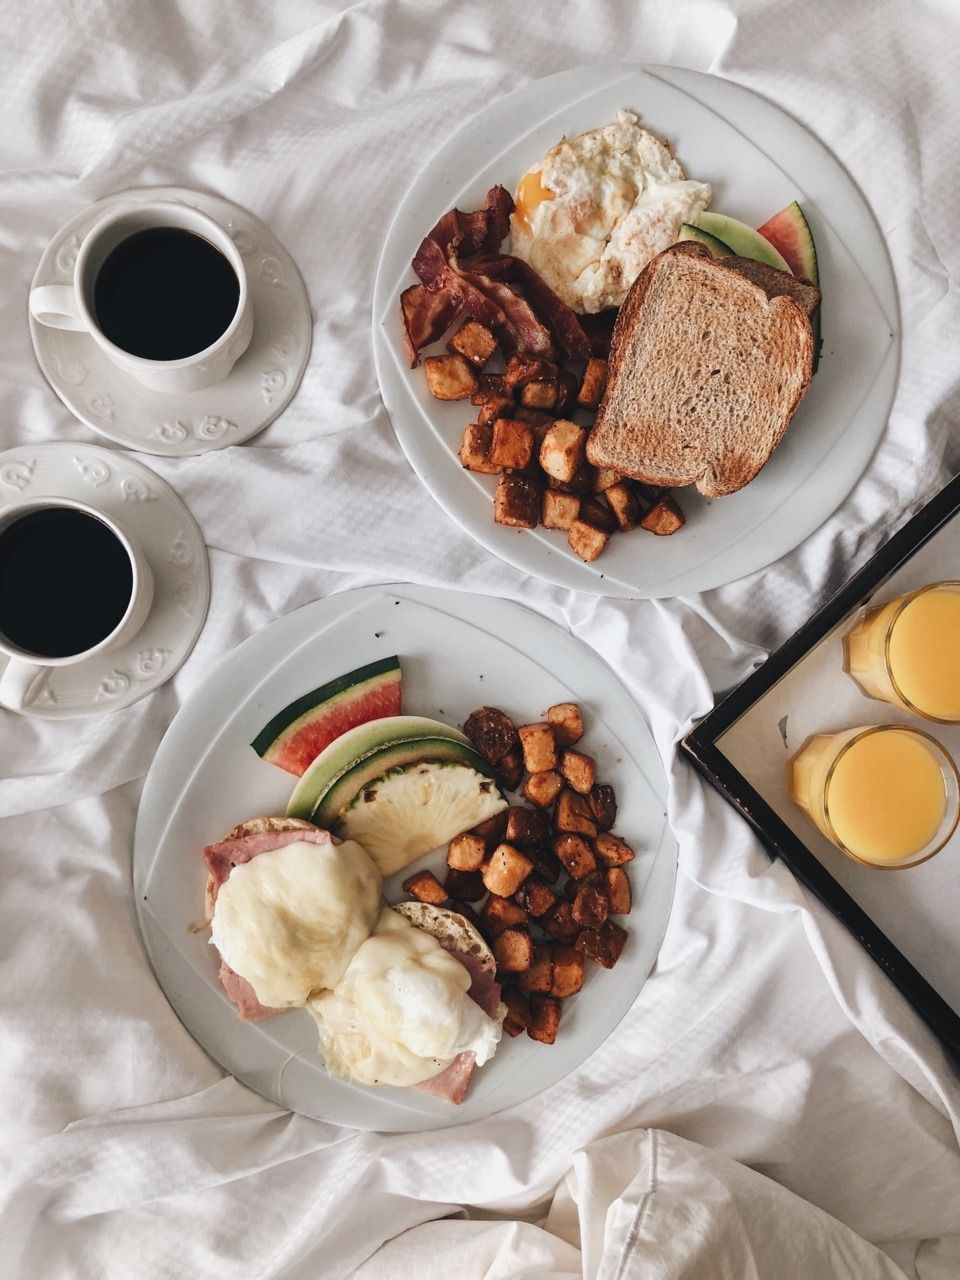 Coffee In Bed Tumblr Bed Tumblr Coffee In Bed Breakfast In Bed